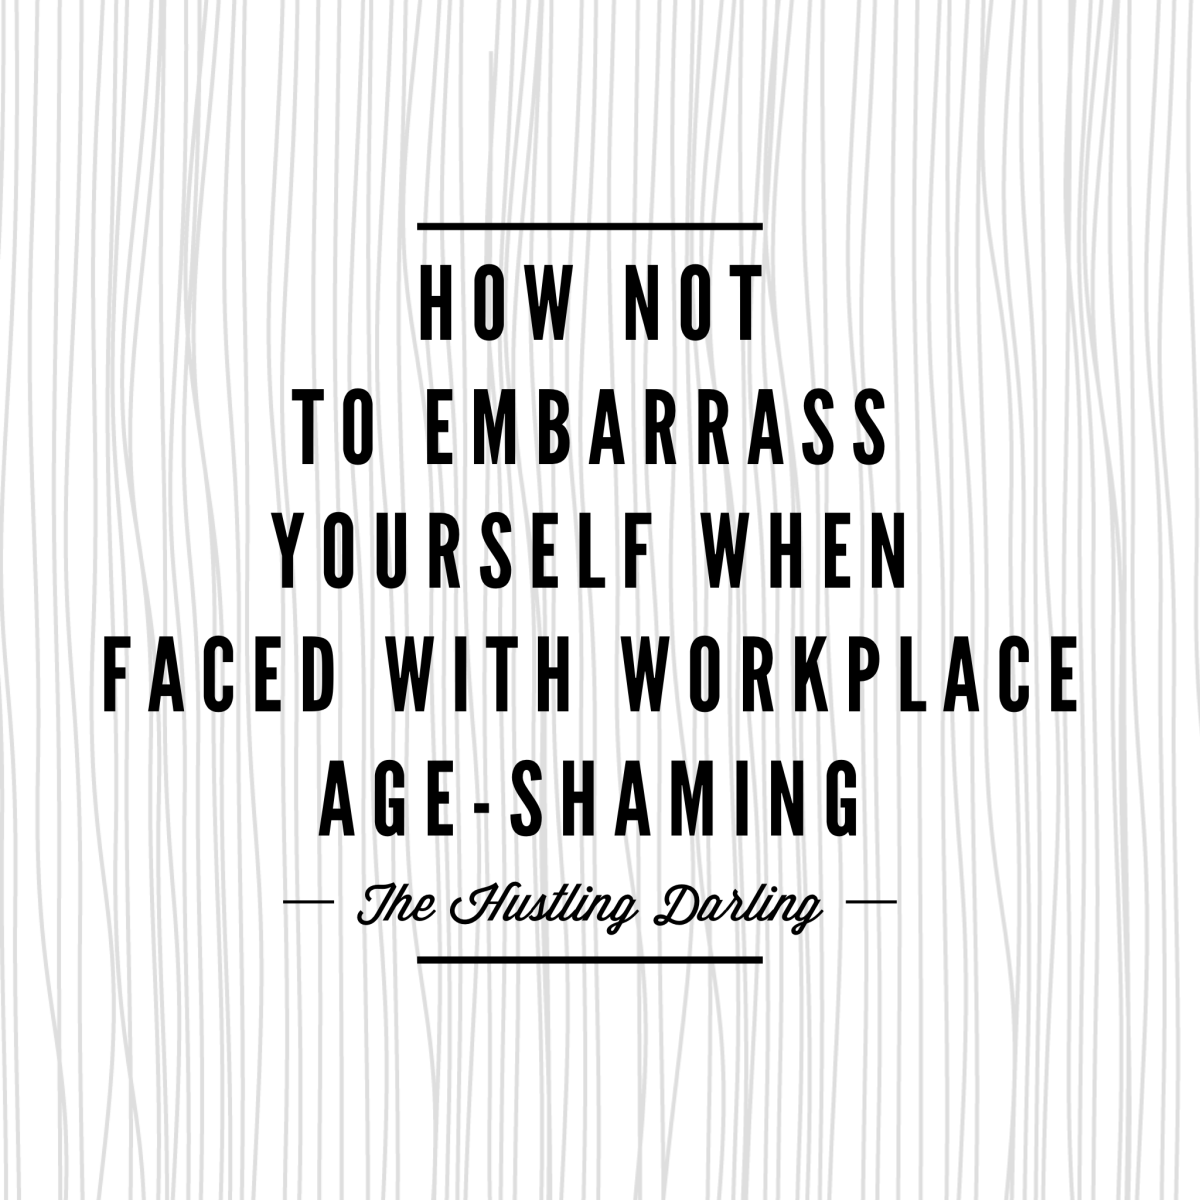 How Not to Embarrass Yourself When Faced with Workplace Age-Shaming